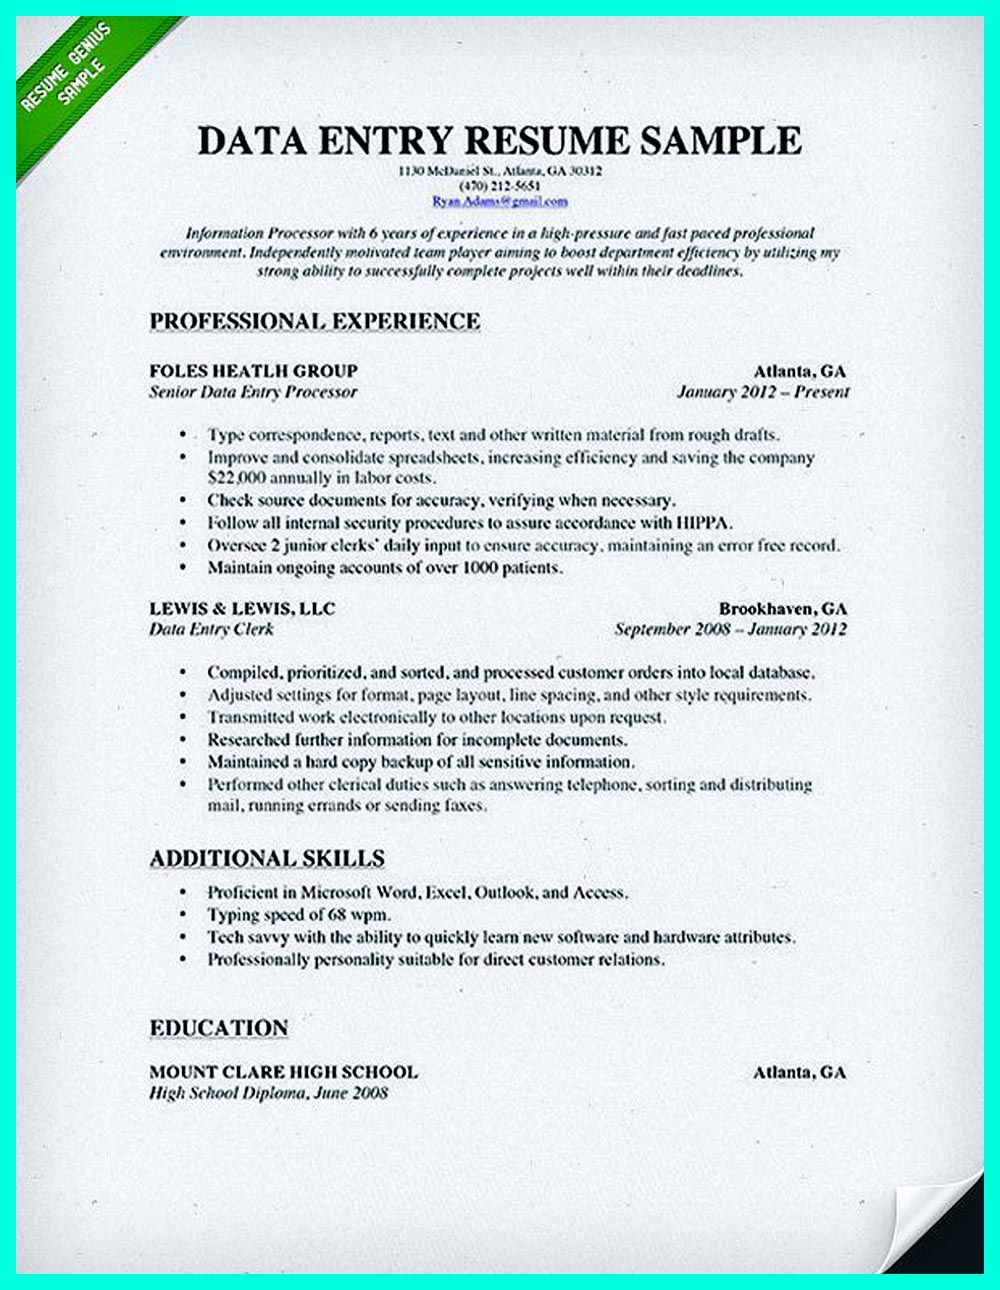 data entry job description for resume free templates copy into of producer examples Resume Copy Job Description Into Resume